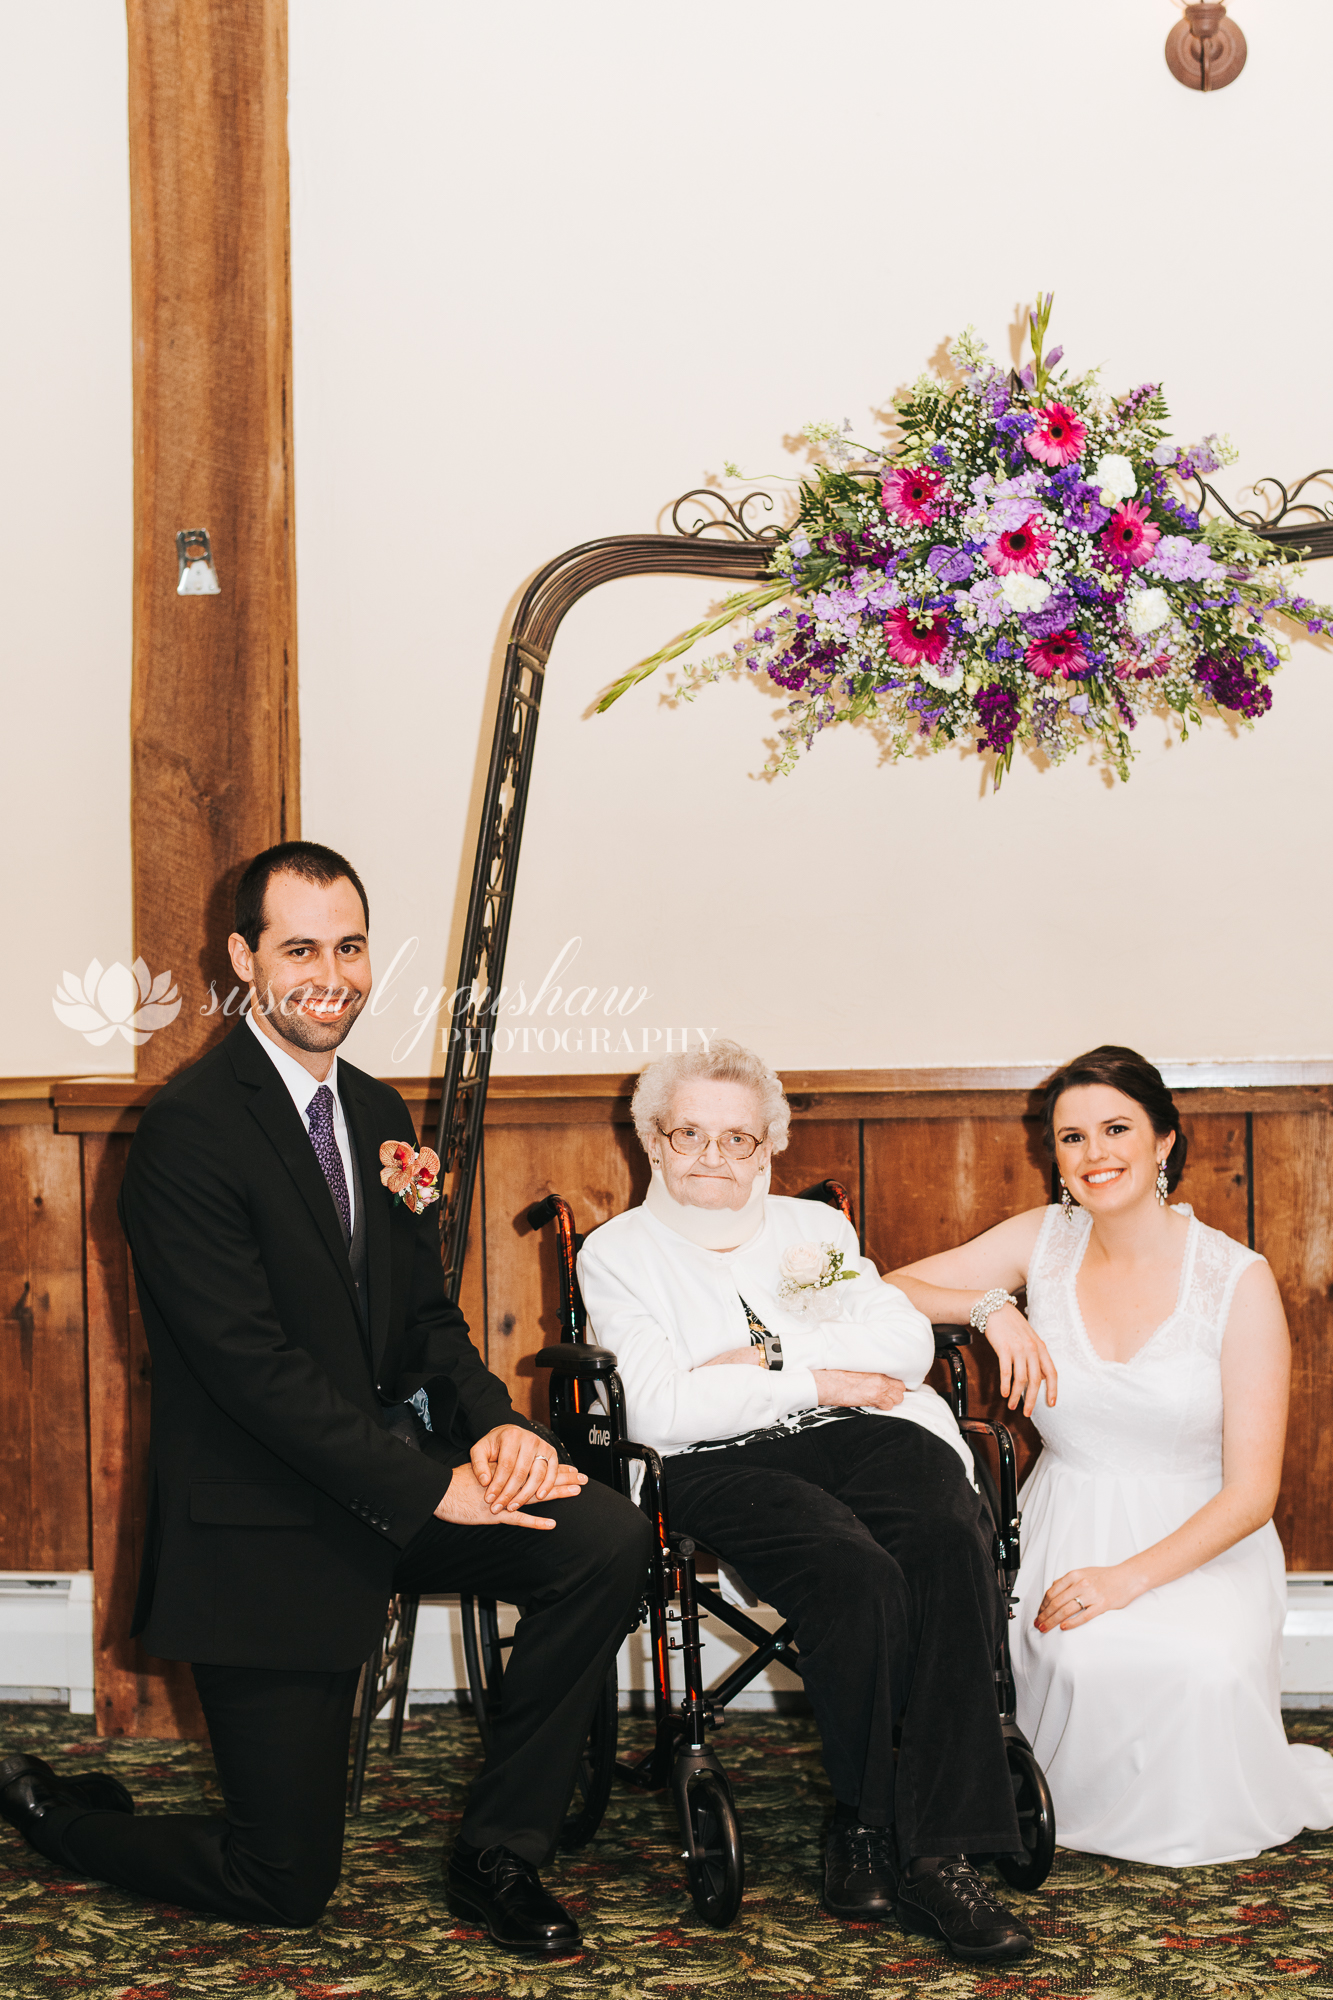 Adena and  Erik Wedding 05-17-2019 SLY Photography-105.jpg